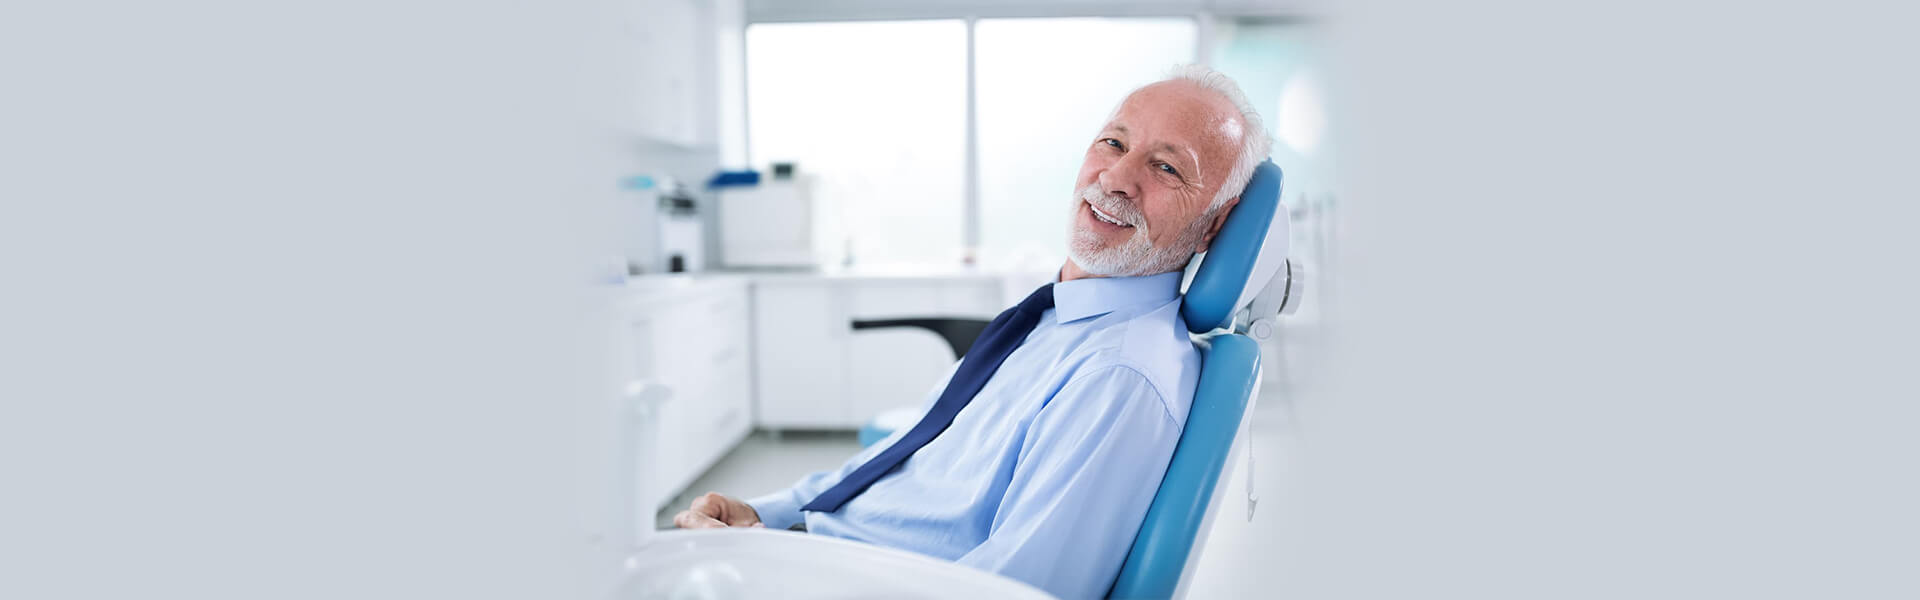 GETTING TO THE ROOT OF ROOT CANALS